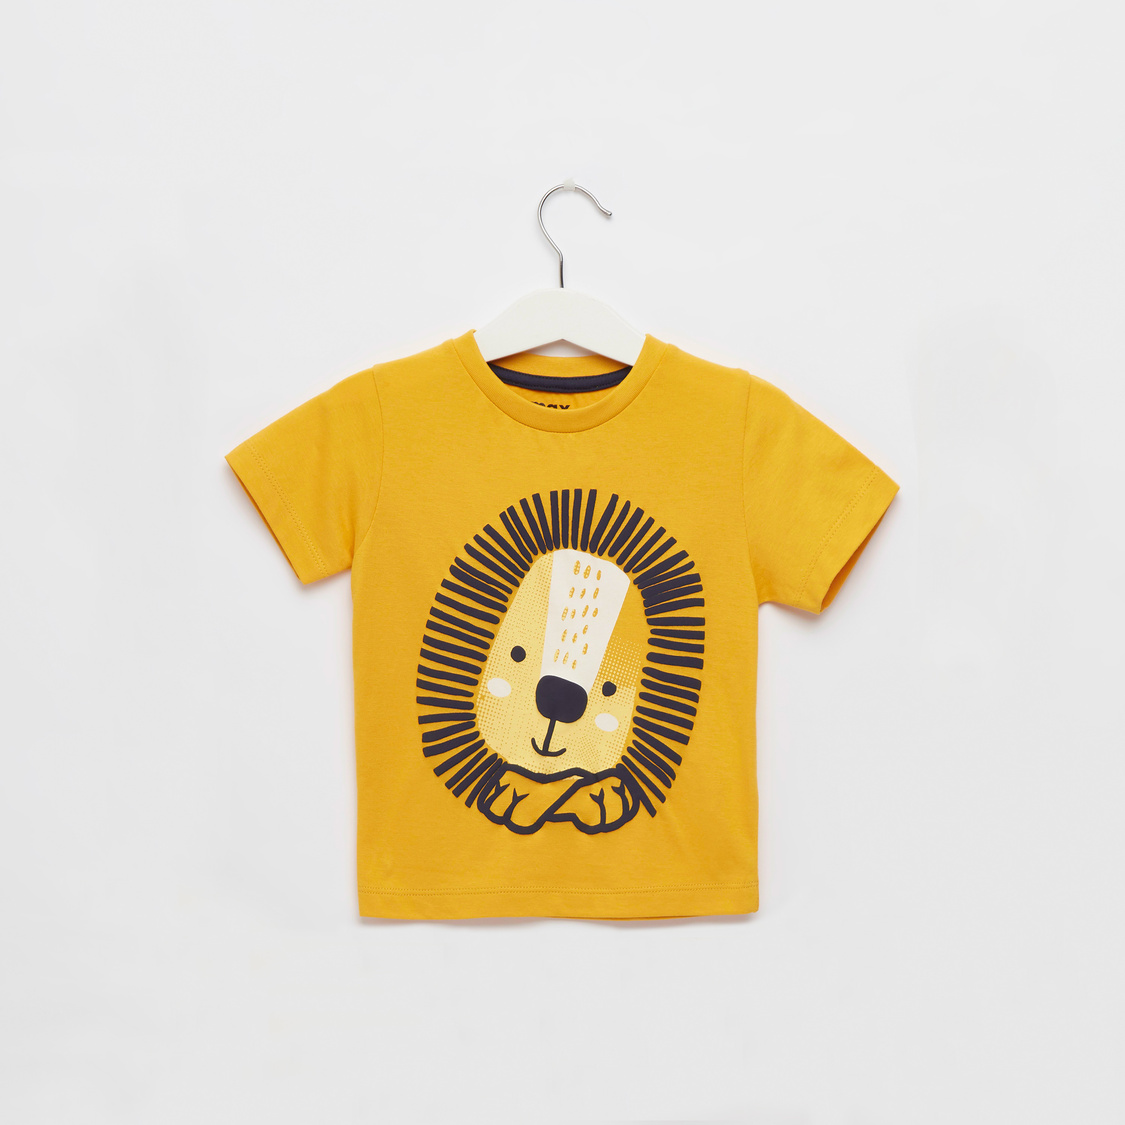 Lion Graphic Print T-shirt with Round Neck and Short Sleeves